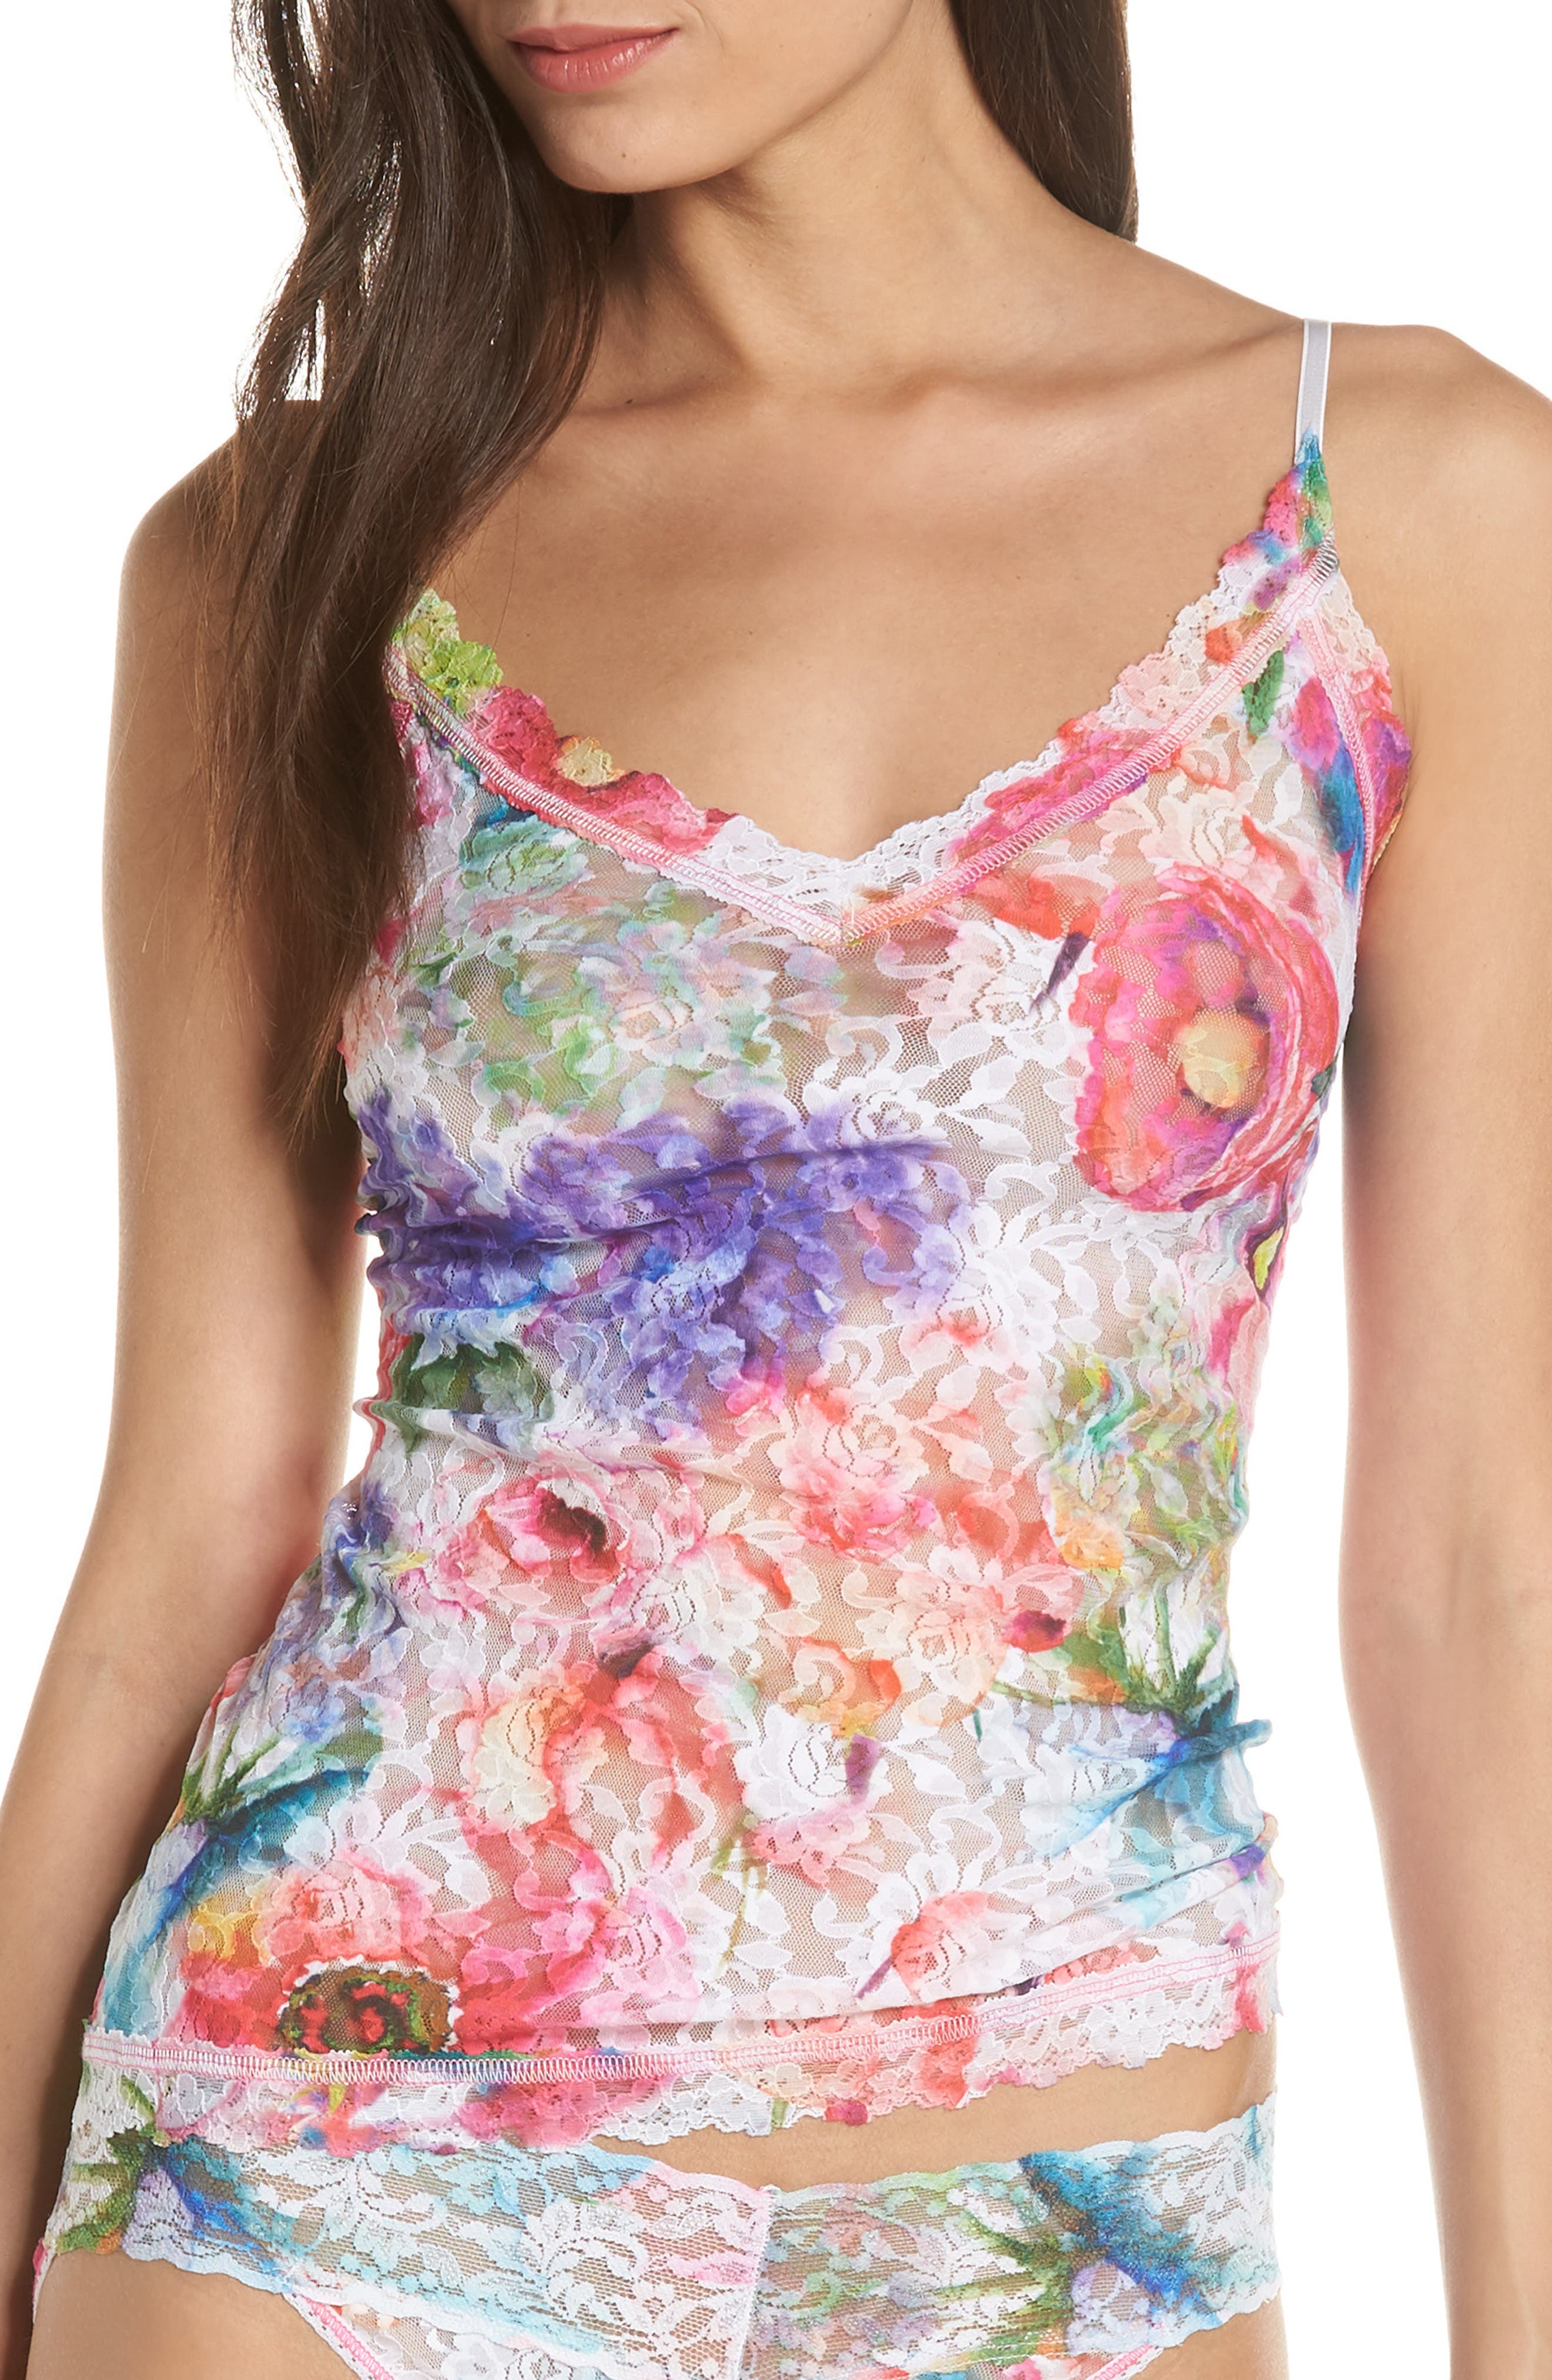 Impressionista Camisole,                             Main thumbnail 1, color,                             WHITE/ MULTI